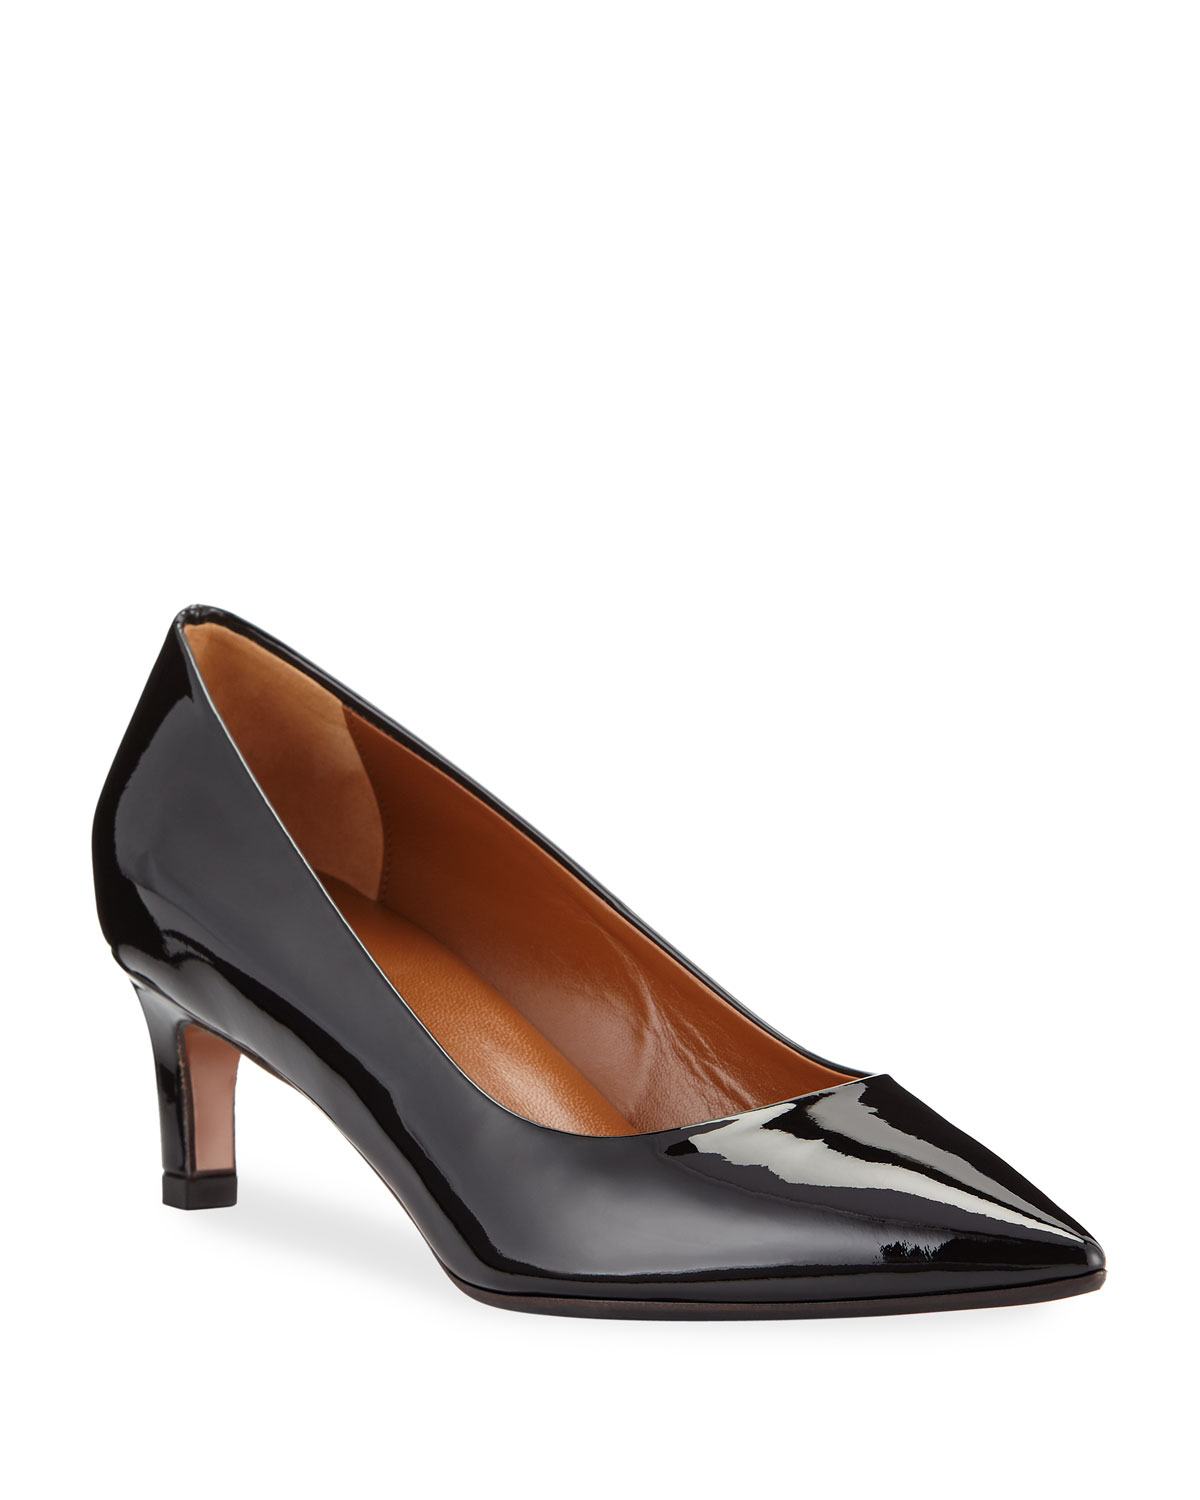 Mariana Patent Leather Pumps